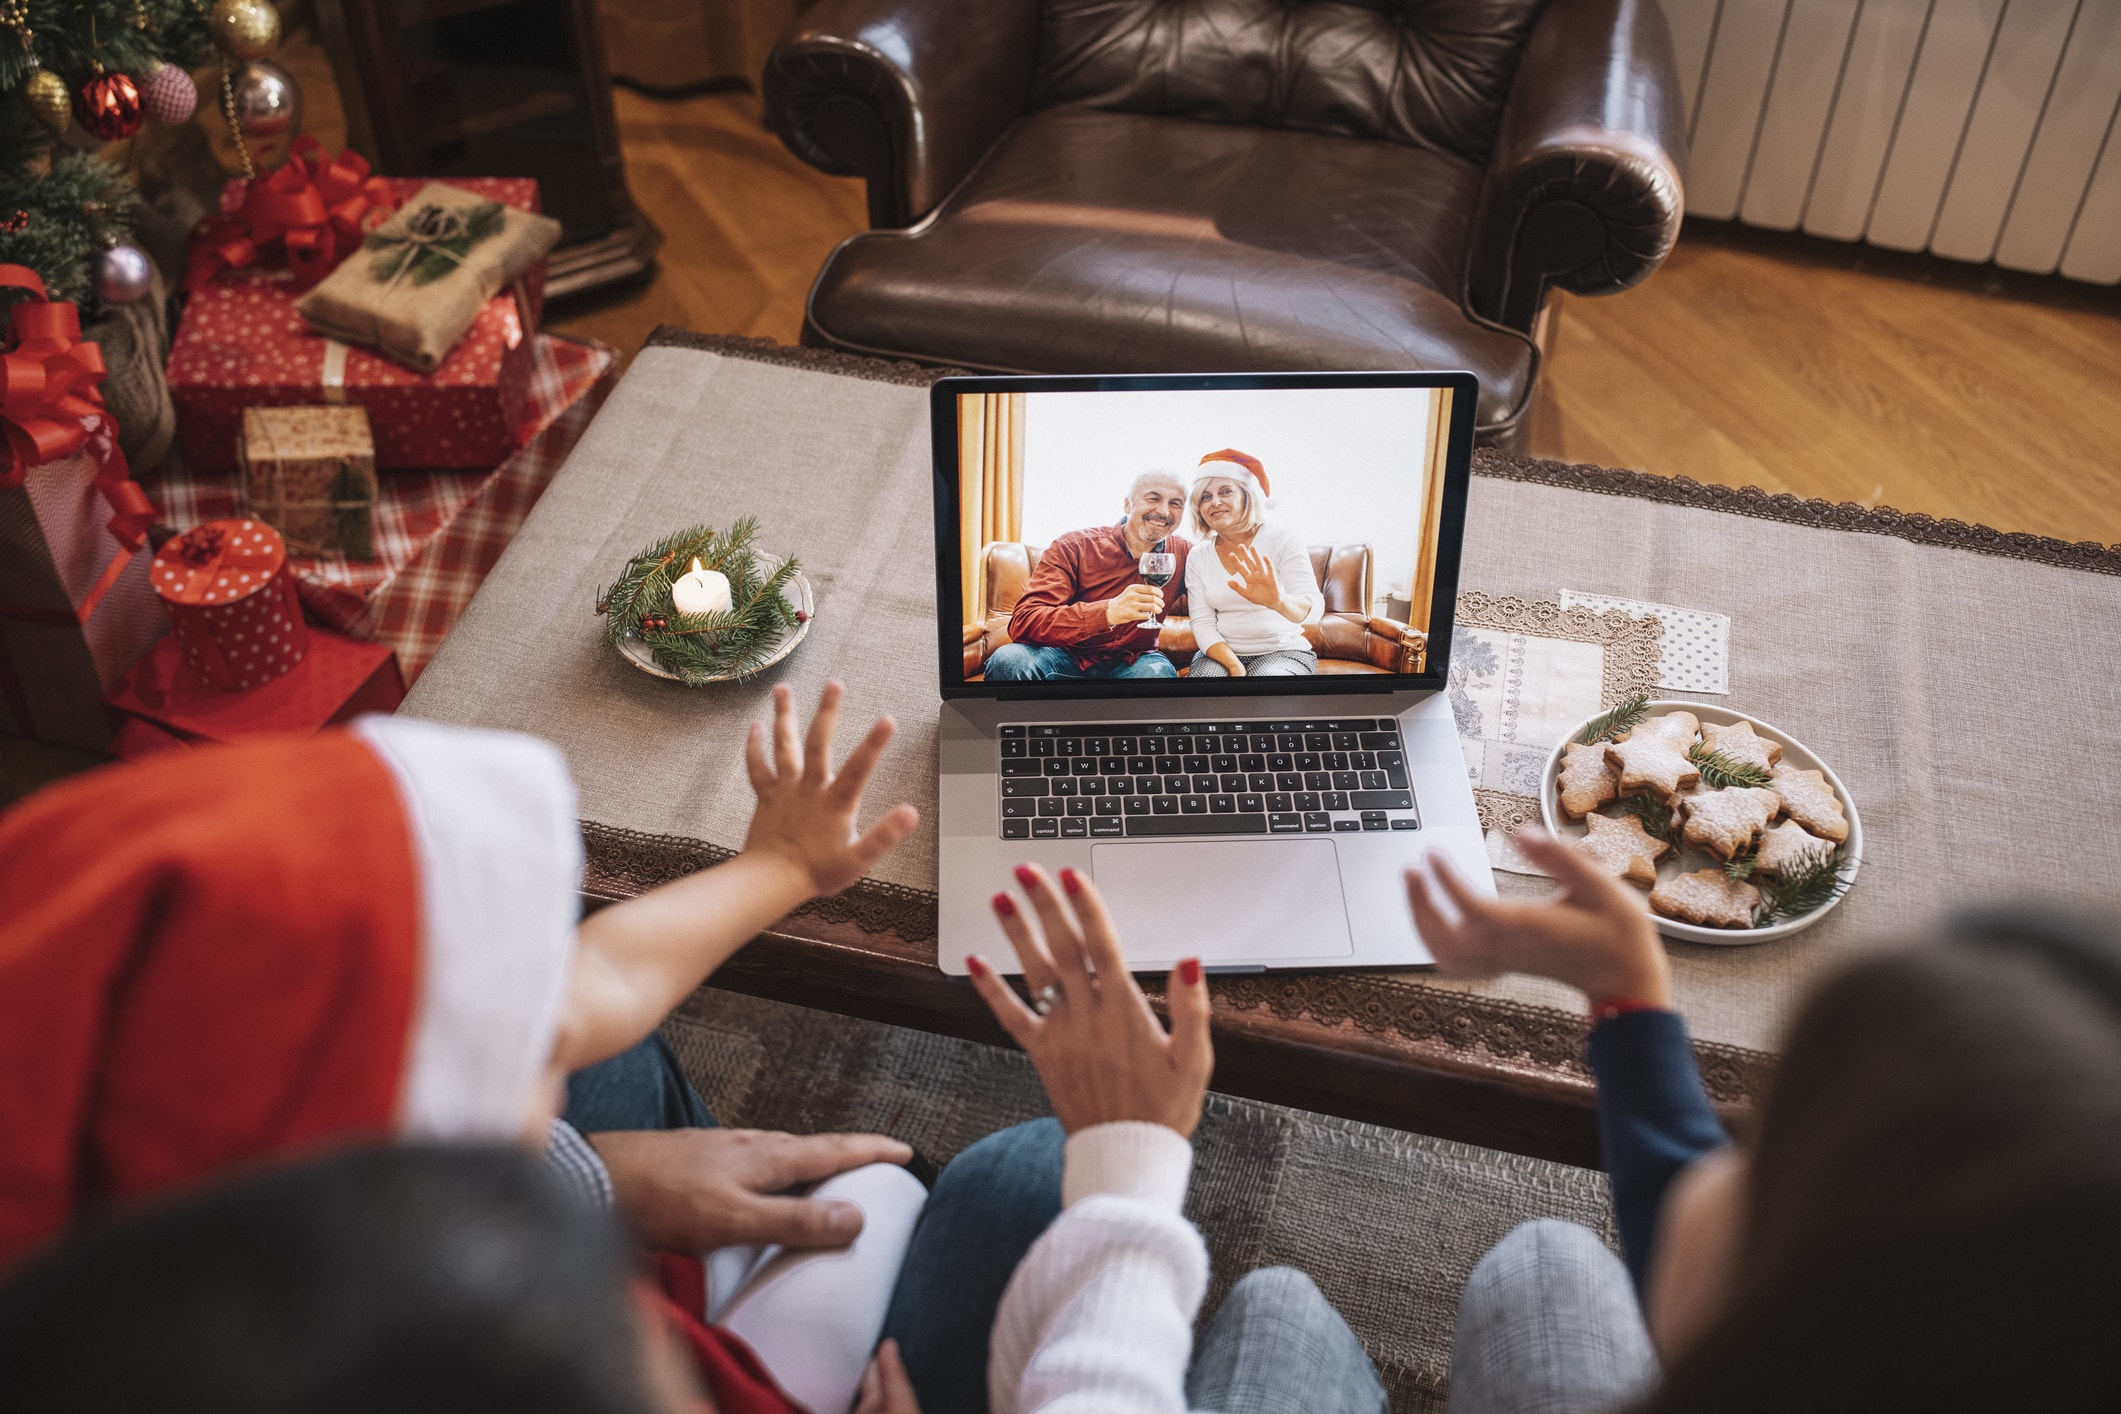 7 Clever Ways to Stay Connected with Loved Ones this Holiday Season